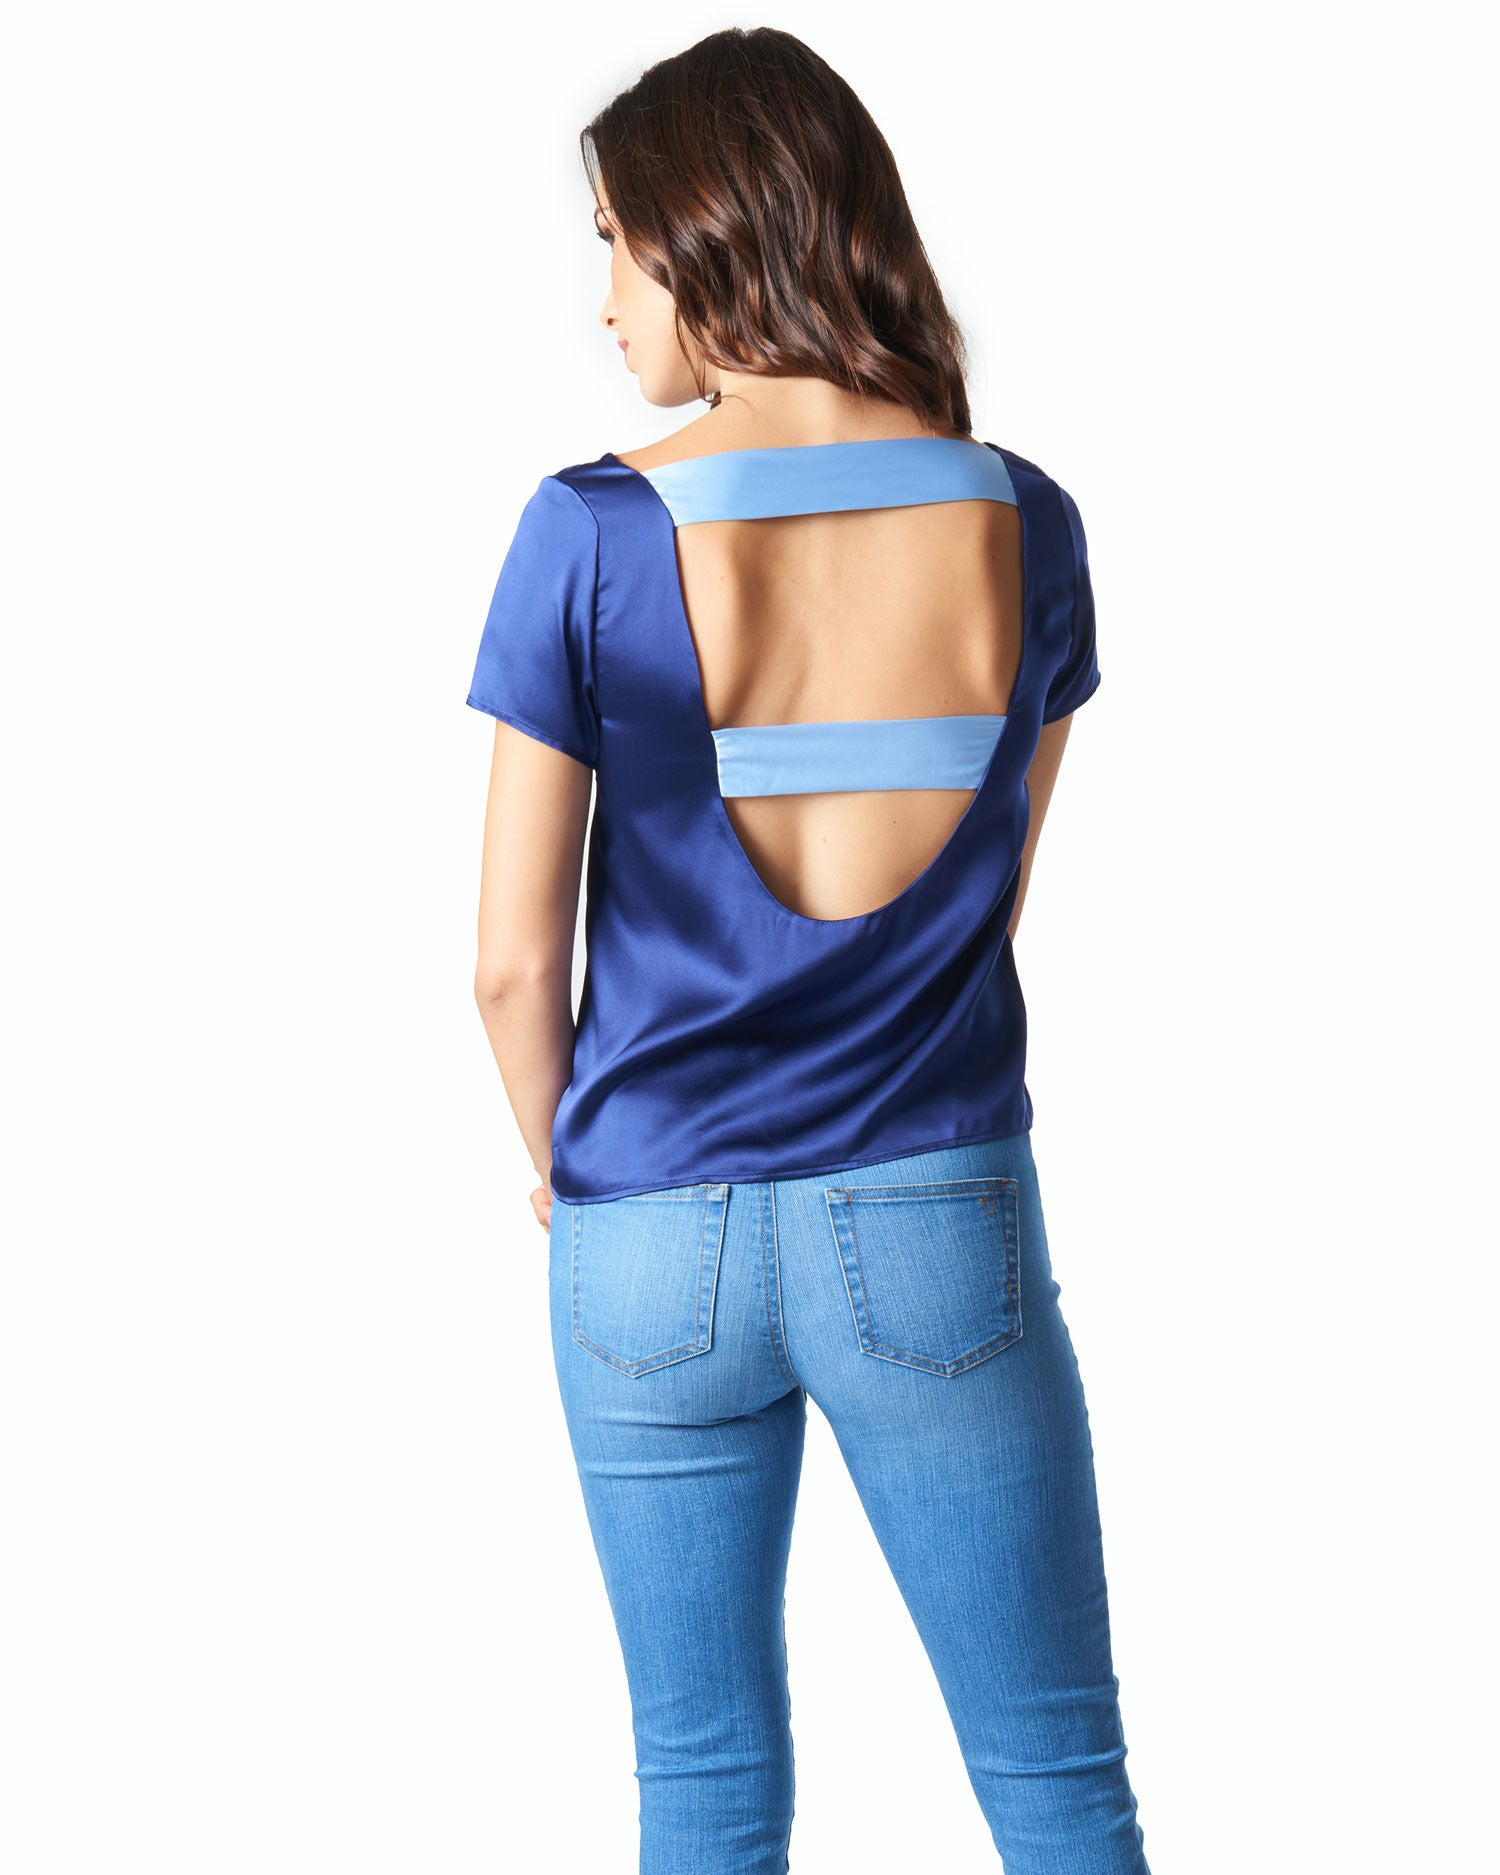 Paige Open Back Top - Navy and Demure Blue